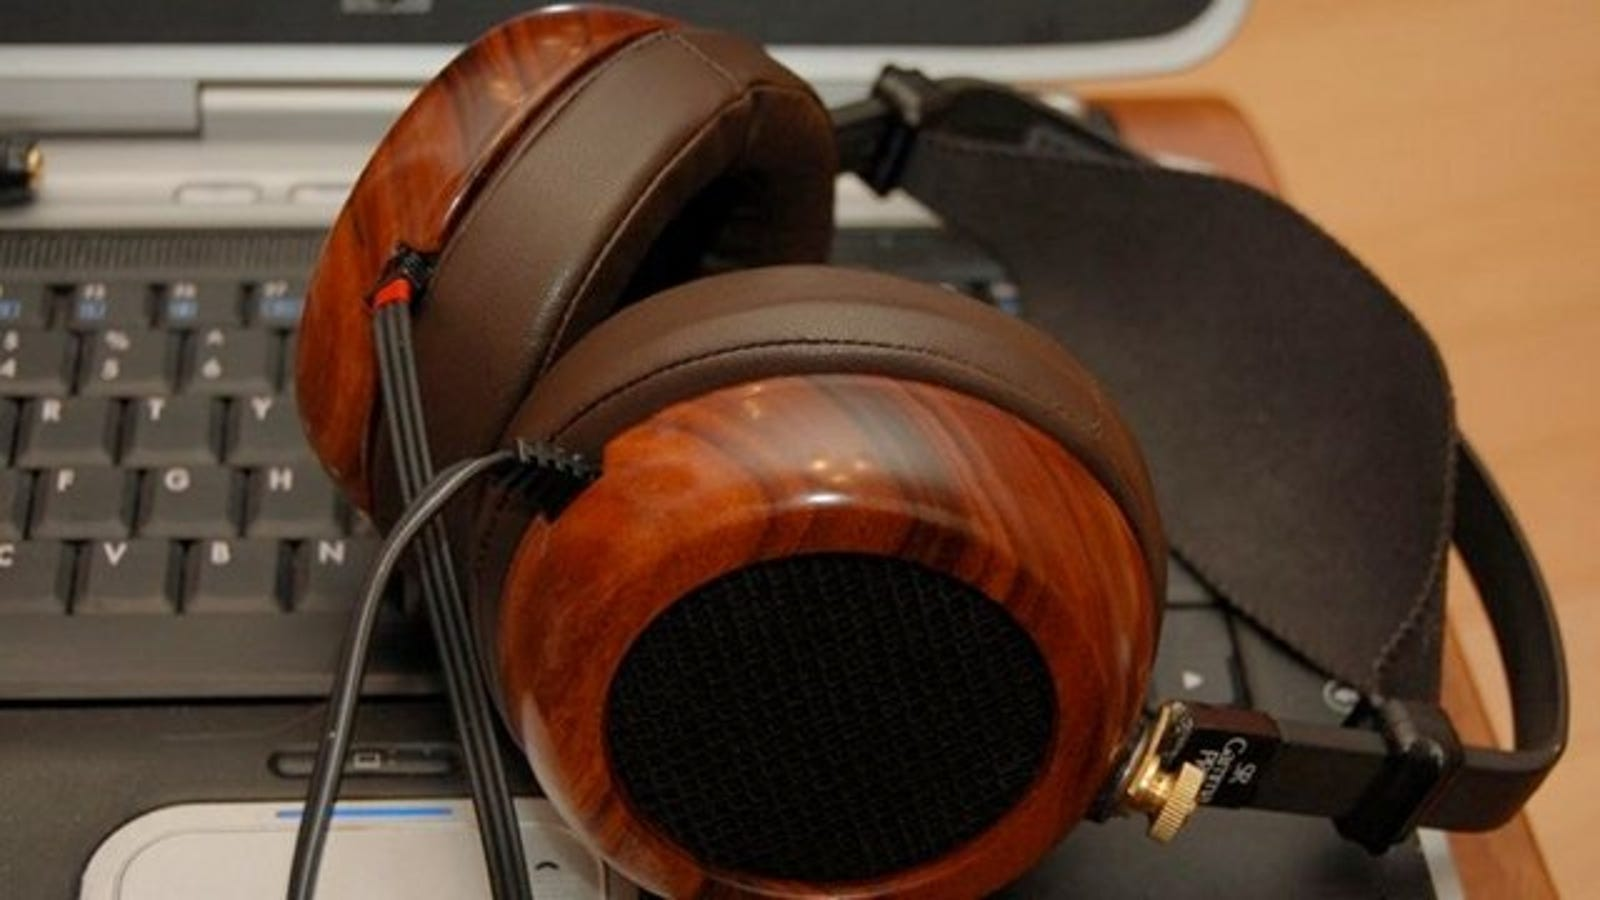 The DIY Headphone Kit That All the Audio Nerds Are Freaking Out About